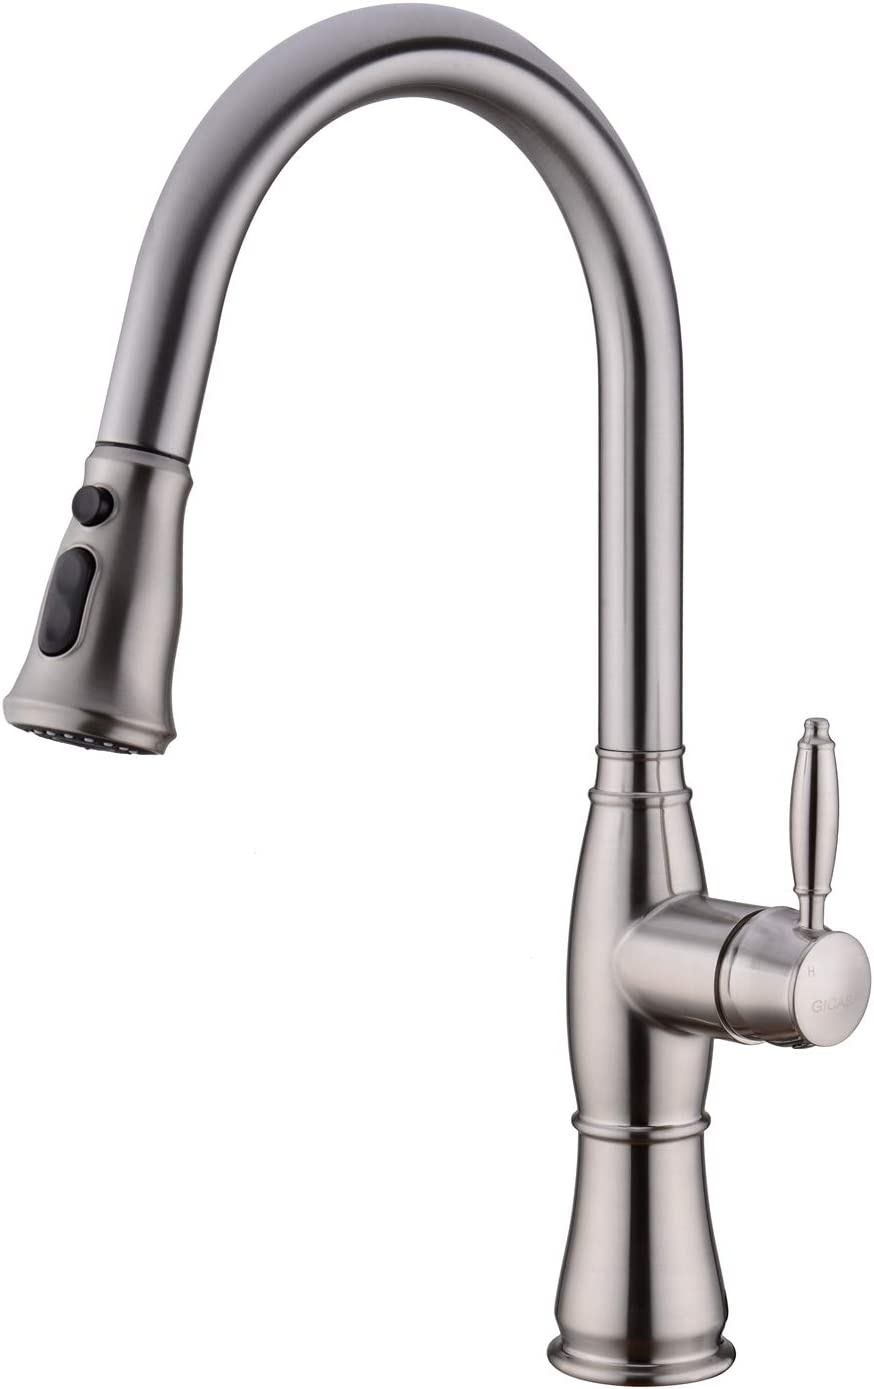 Kitchen Sink Faucet, GICASA Brushed Nickel Single Handle Pull Out Sink Faucet, Stainless Steel Pause Function Sprayer Pull Down Kitchen Sink Faucets